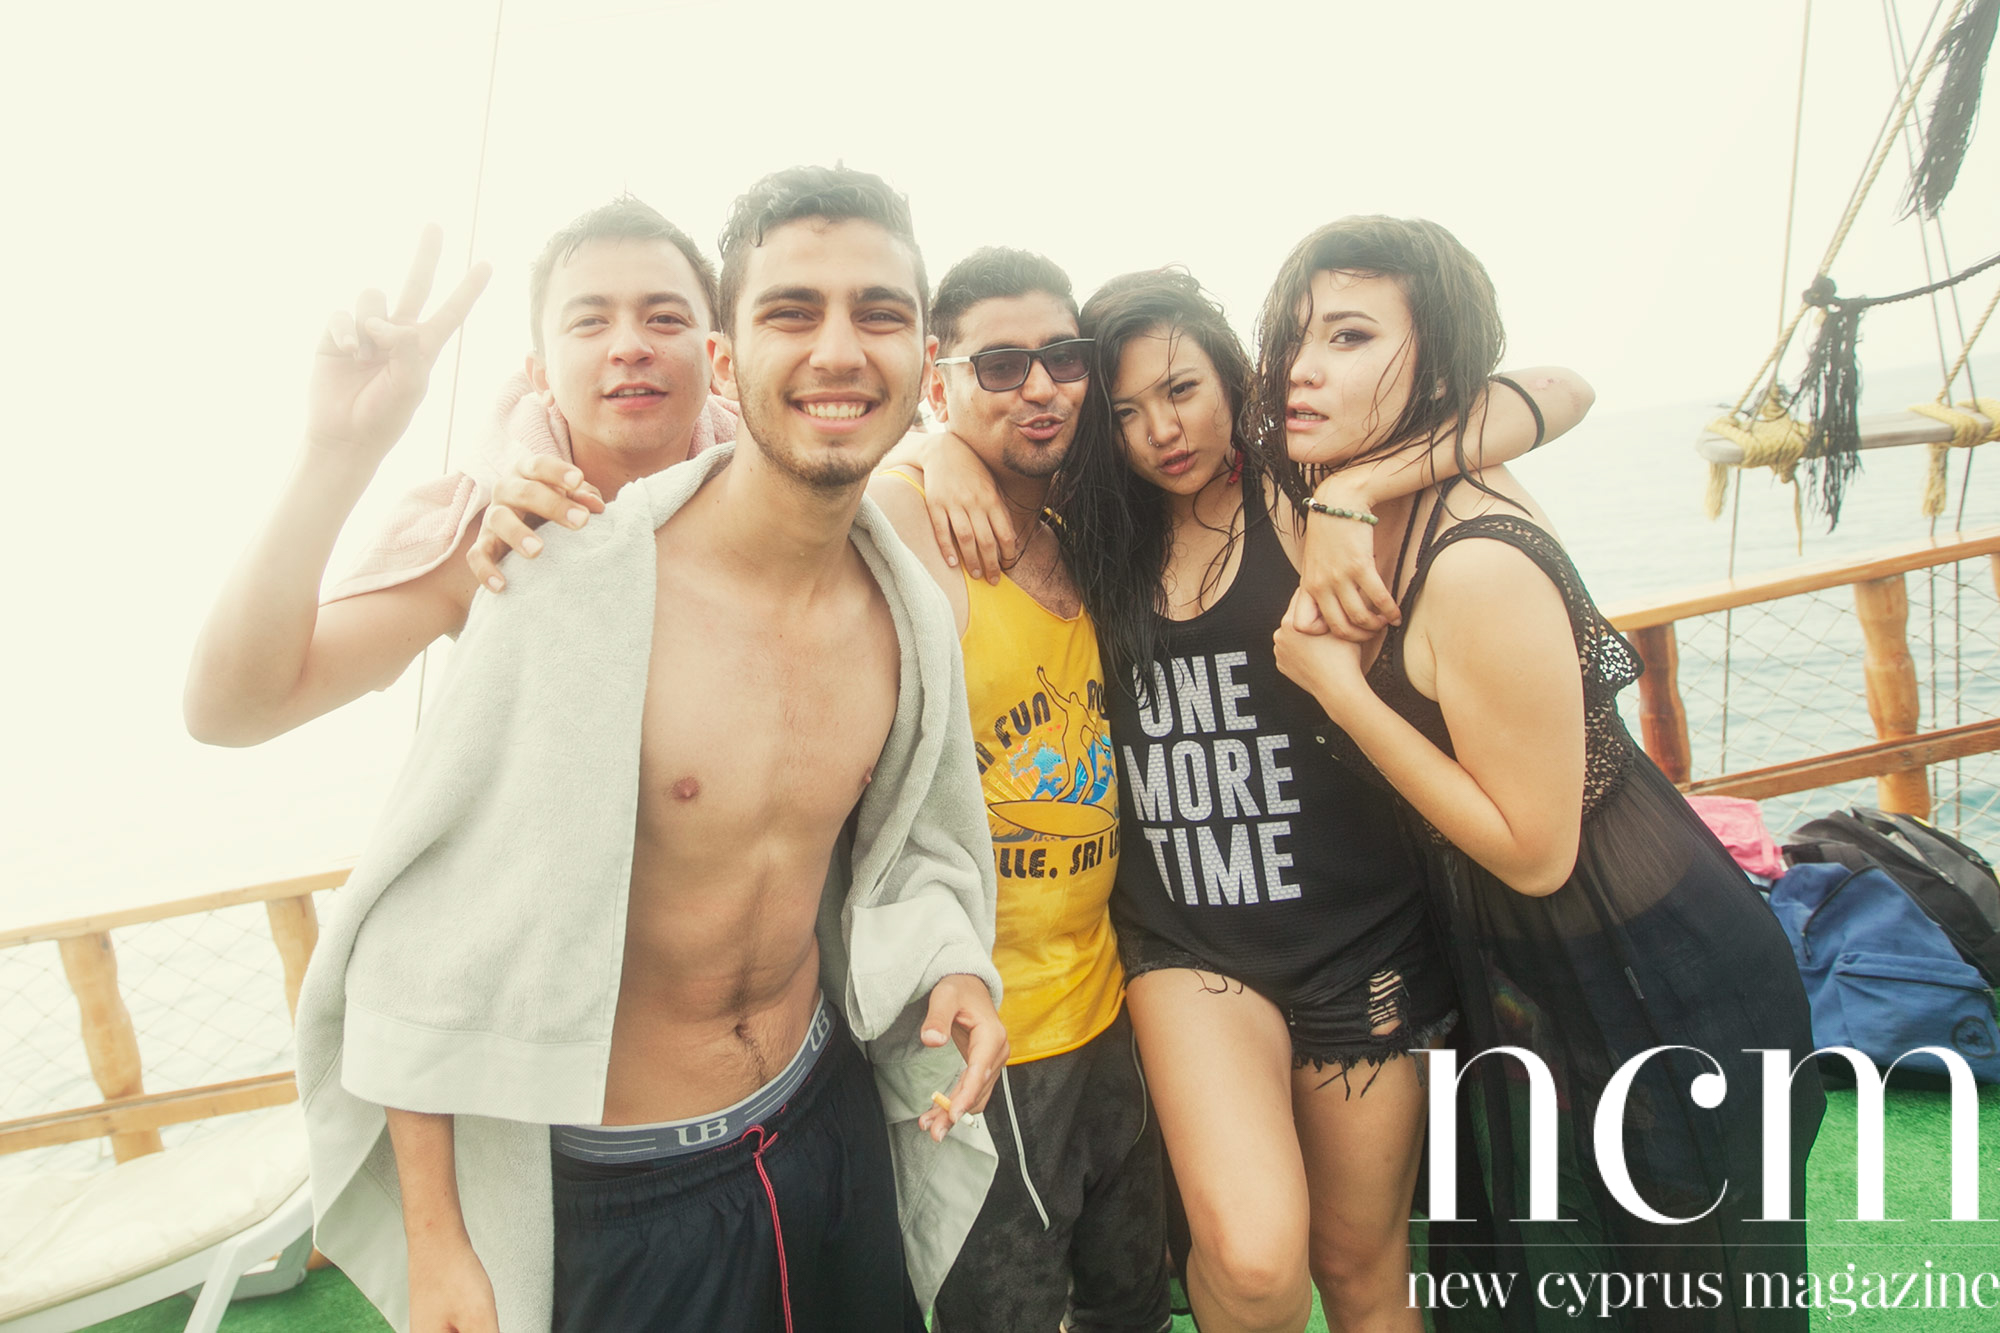 Boat party in North Cyprus